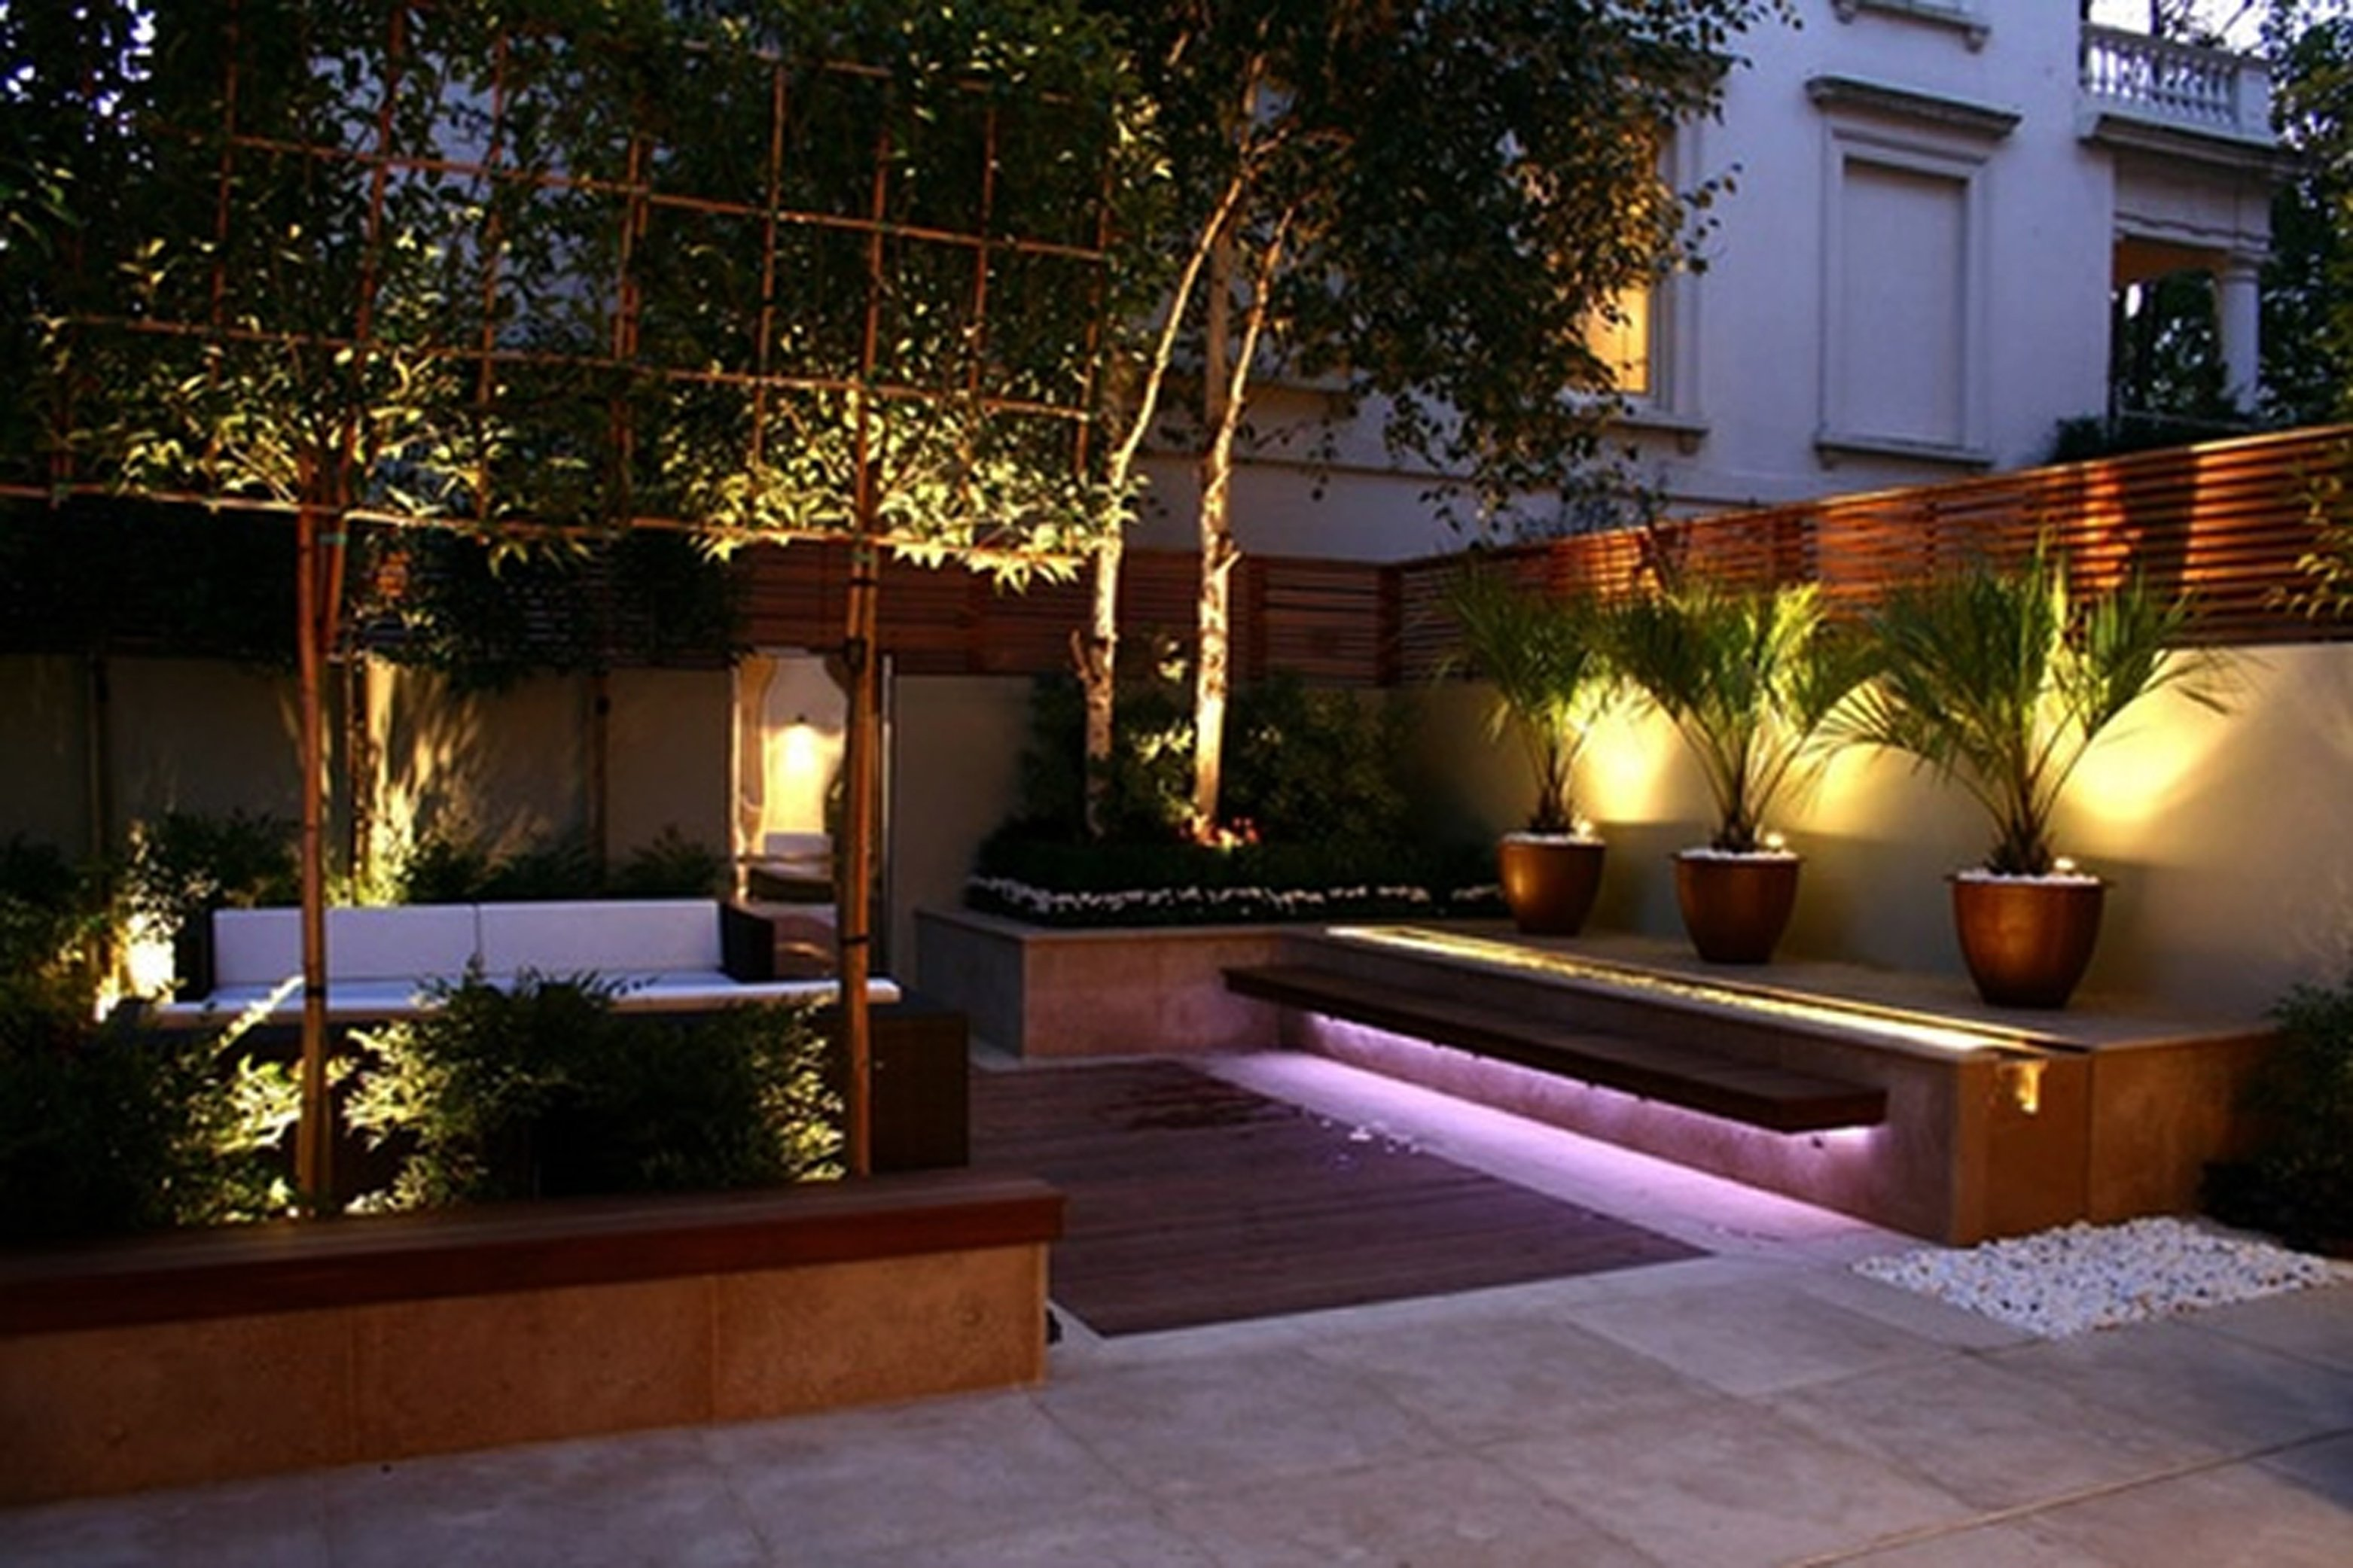 Ideas Para Decorar Exteriores Ideas Para Decorar Exteriores En Primavera